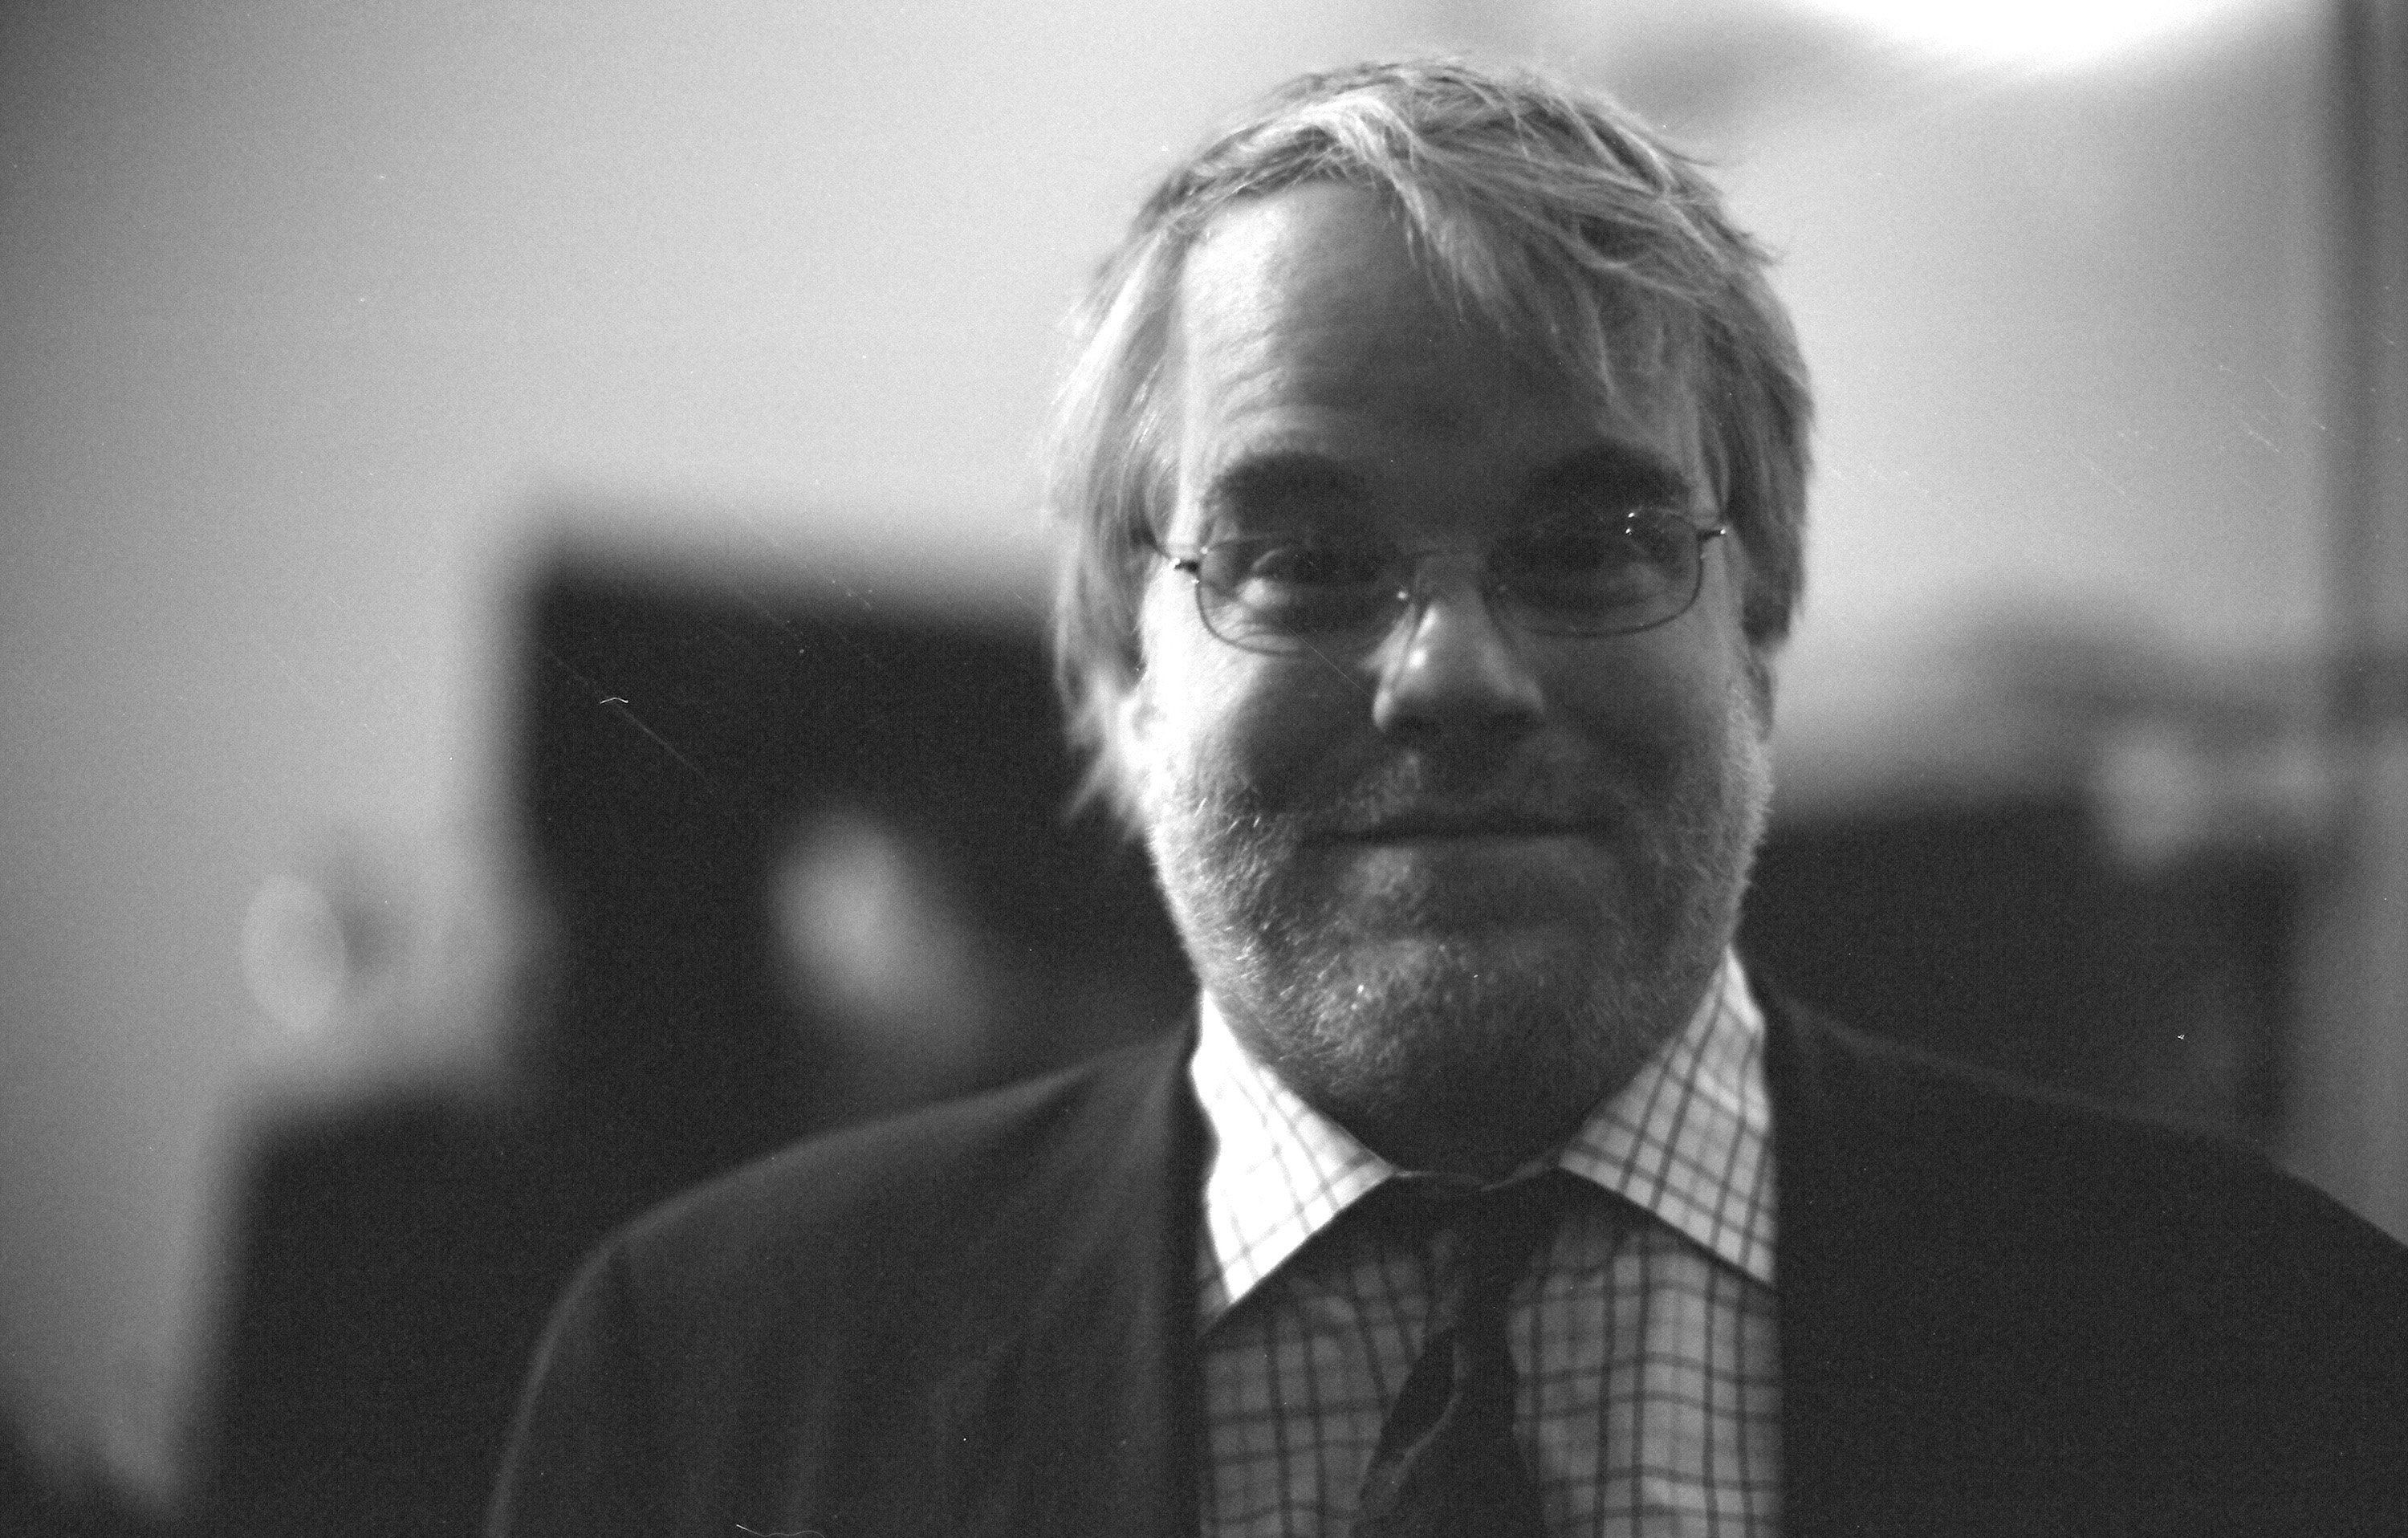 In the week afterPhilip Seymour Hoffman's death, people tried to learn about heroin like never before. Then, they went